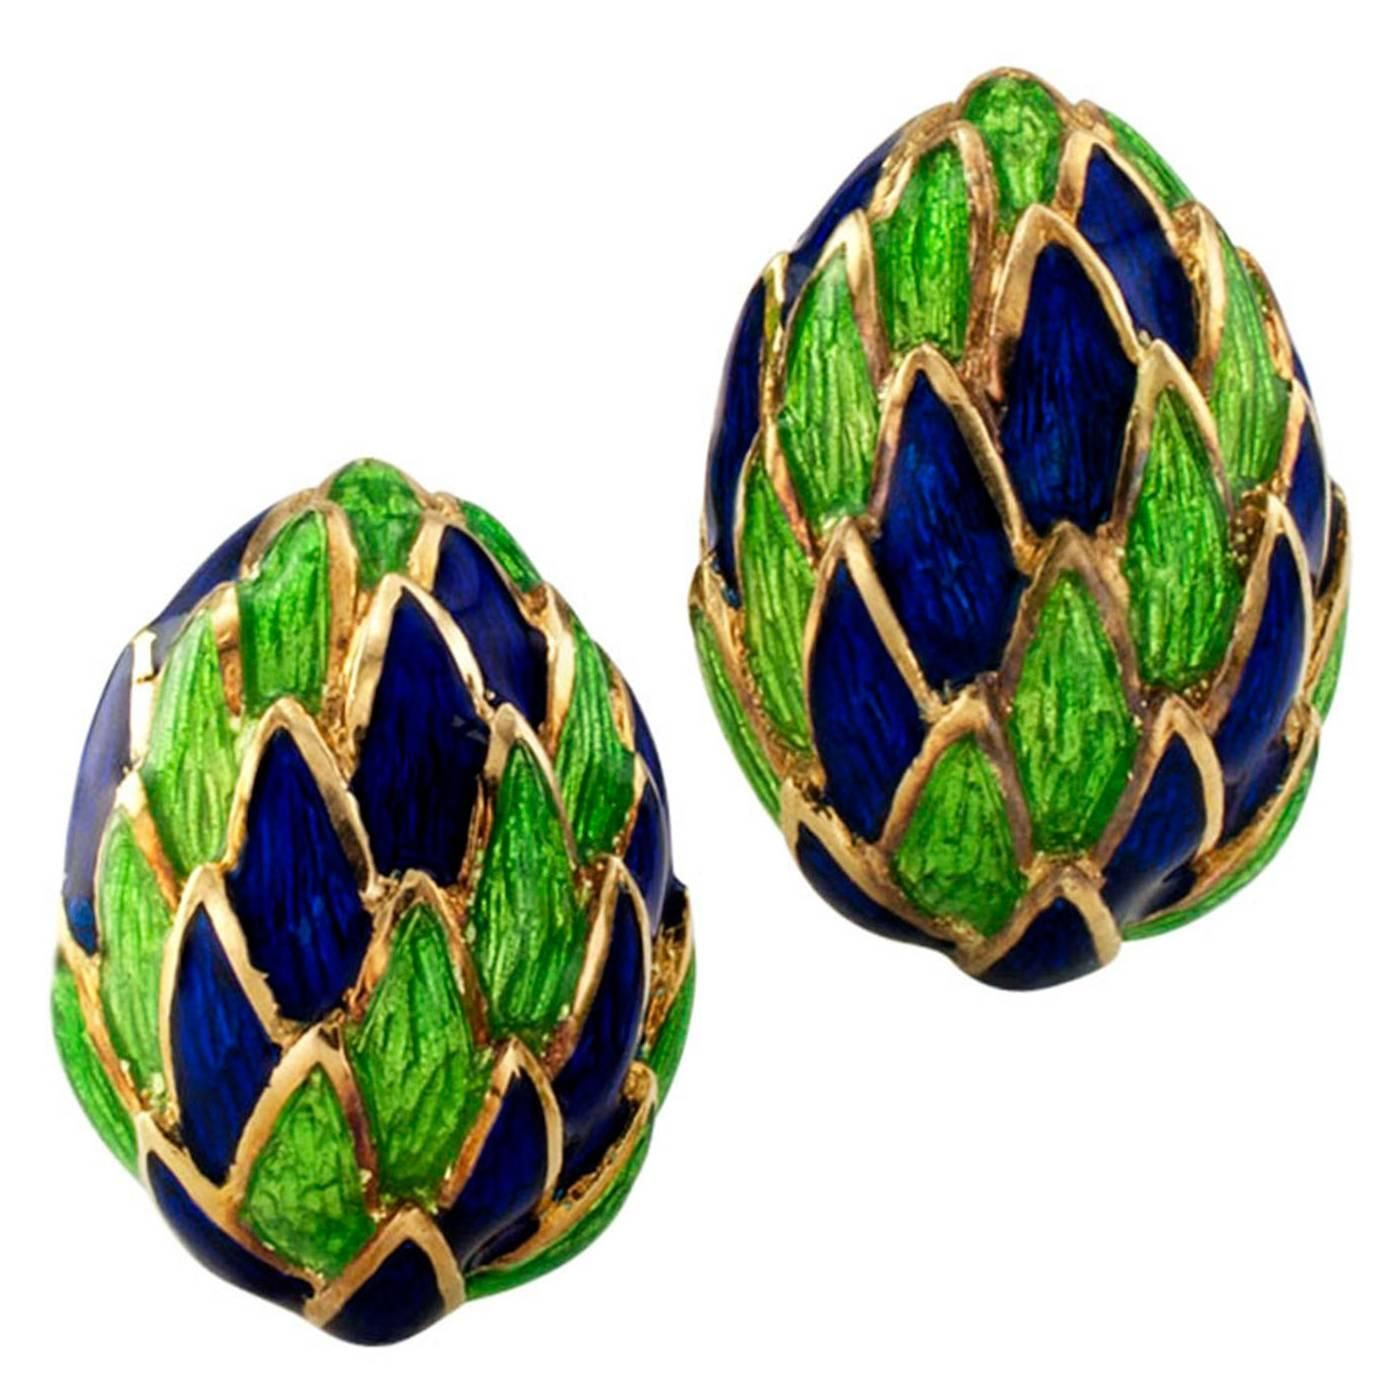 1970s Blue and Green Enamel Gold Clip On Earrings   From a unique collection of vintage clip-on earrings at https://www.1stdibs.com/jewelry/earrings/clip-on-earrings/